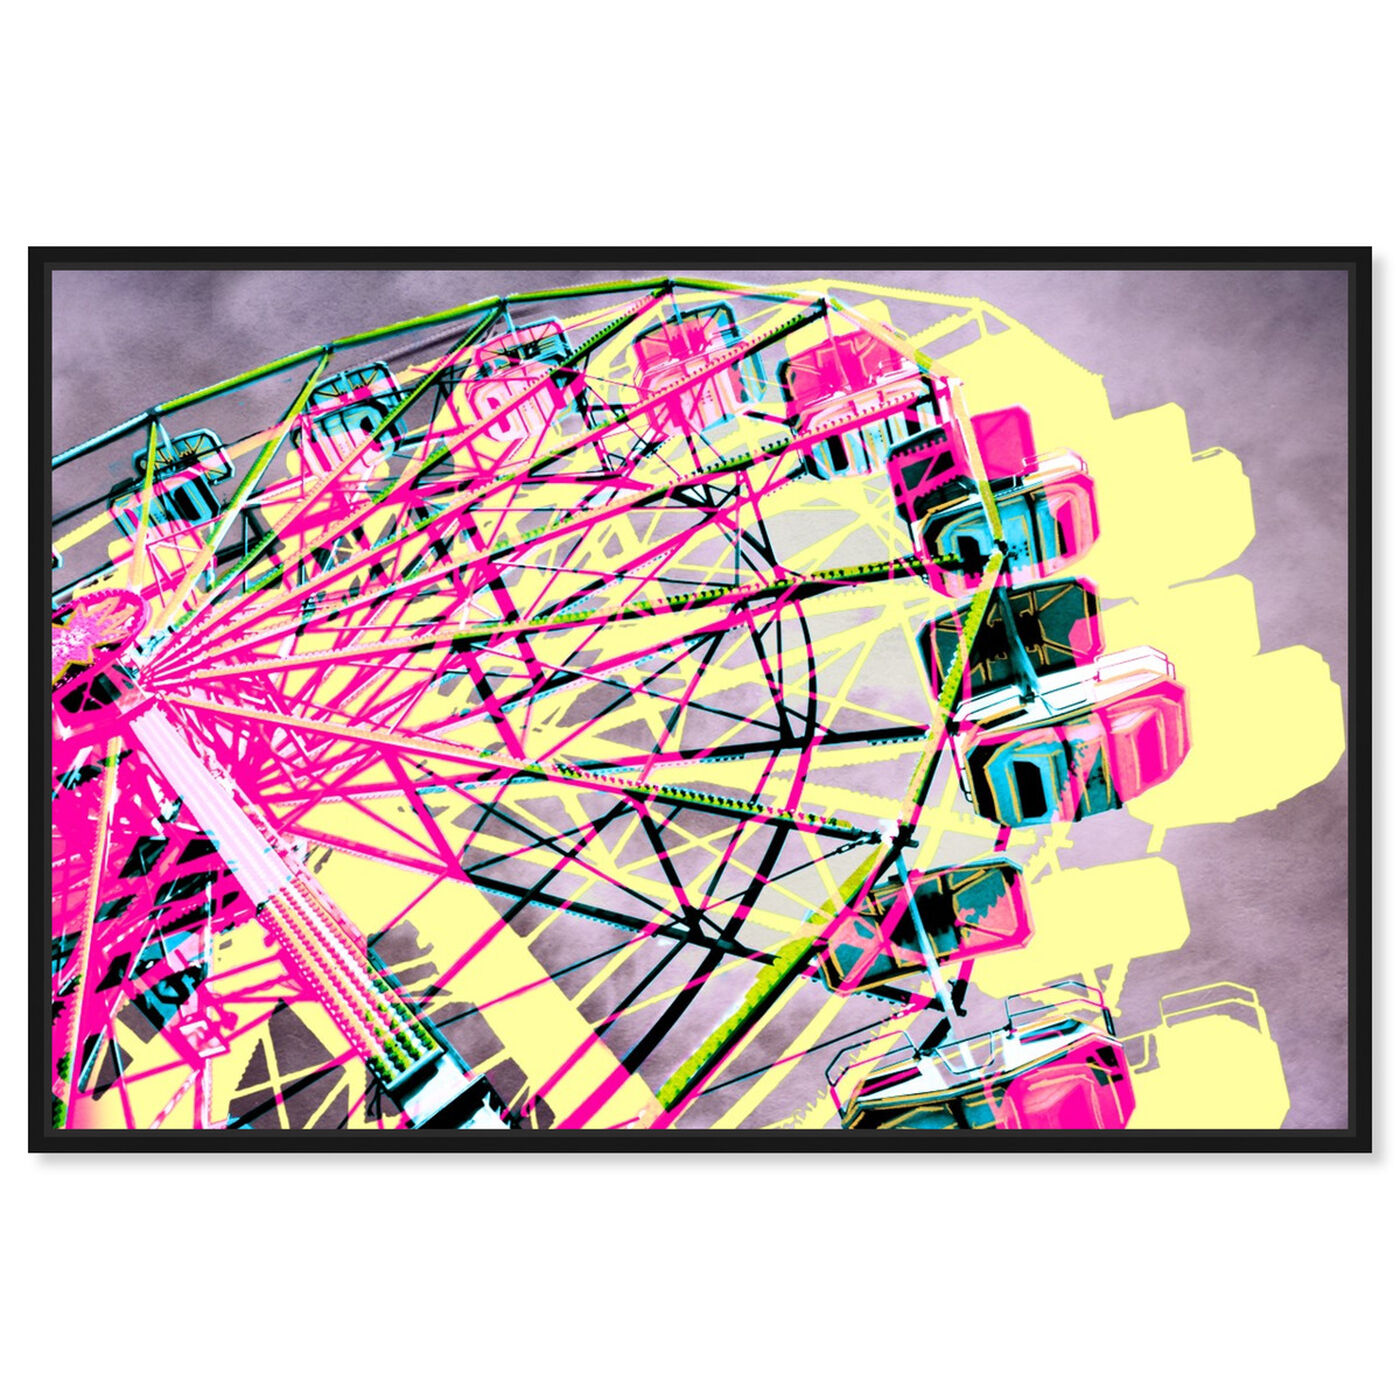 Front view of Ferris Wheel featuring entertainment and hobbies and fairs art.